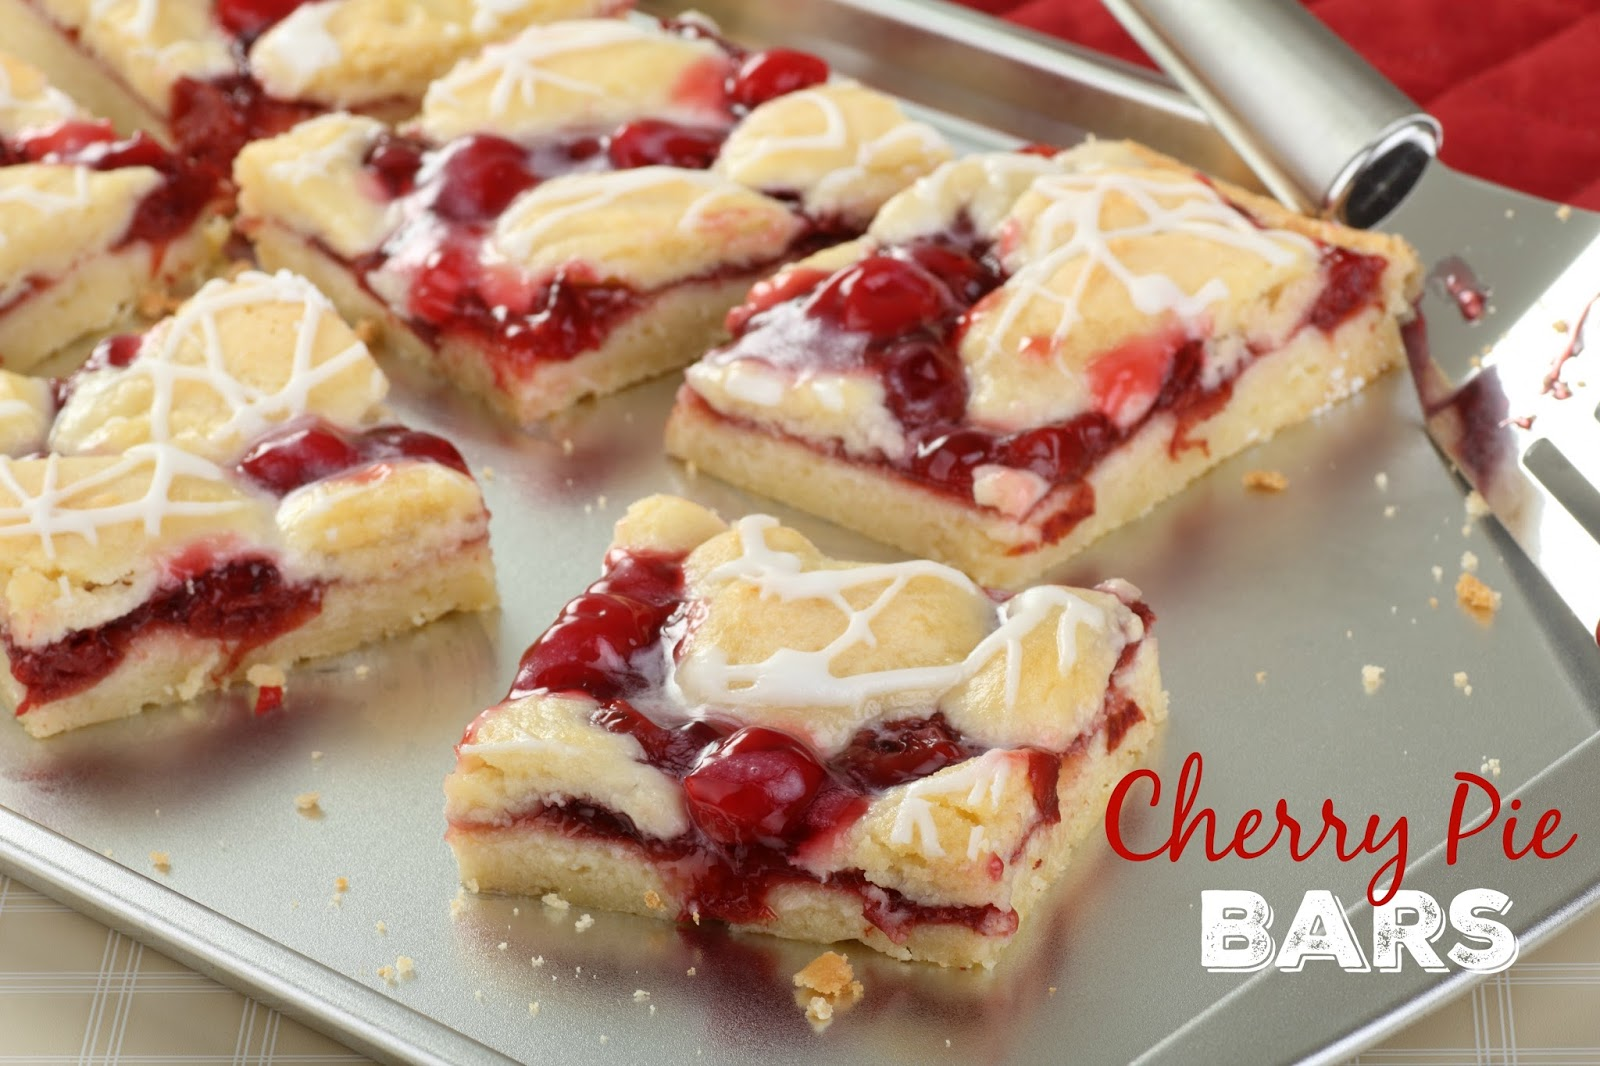 Cherry pie bars the country cook ingredients for the bars 1 cup butter softened 2 cups sugar 1 teaspoon salt 4 large egglands best eggs 1 tsp vanilla extract 14 tsp almond extract forumfinder Images